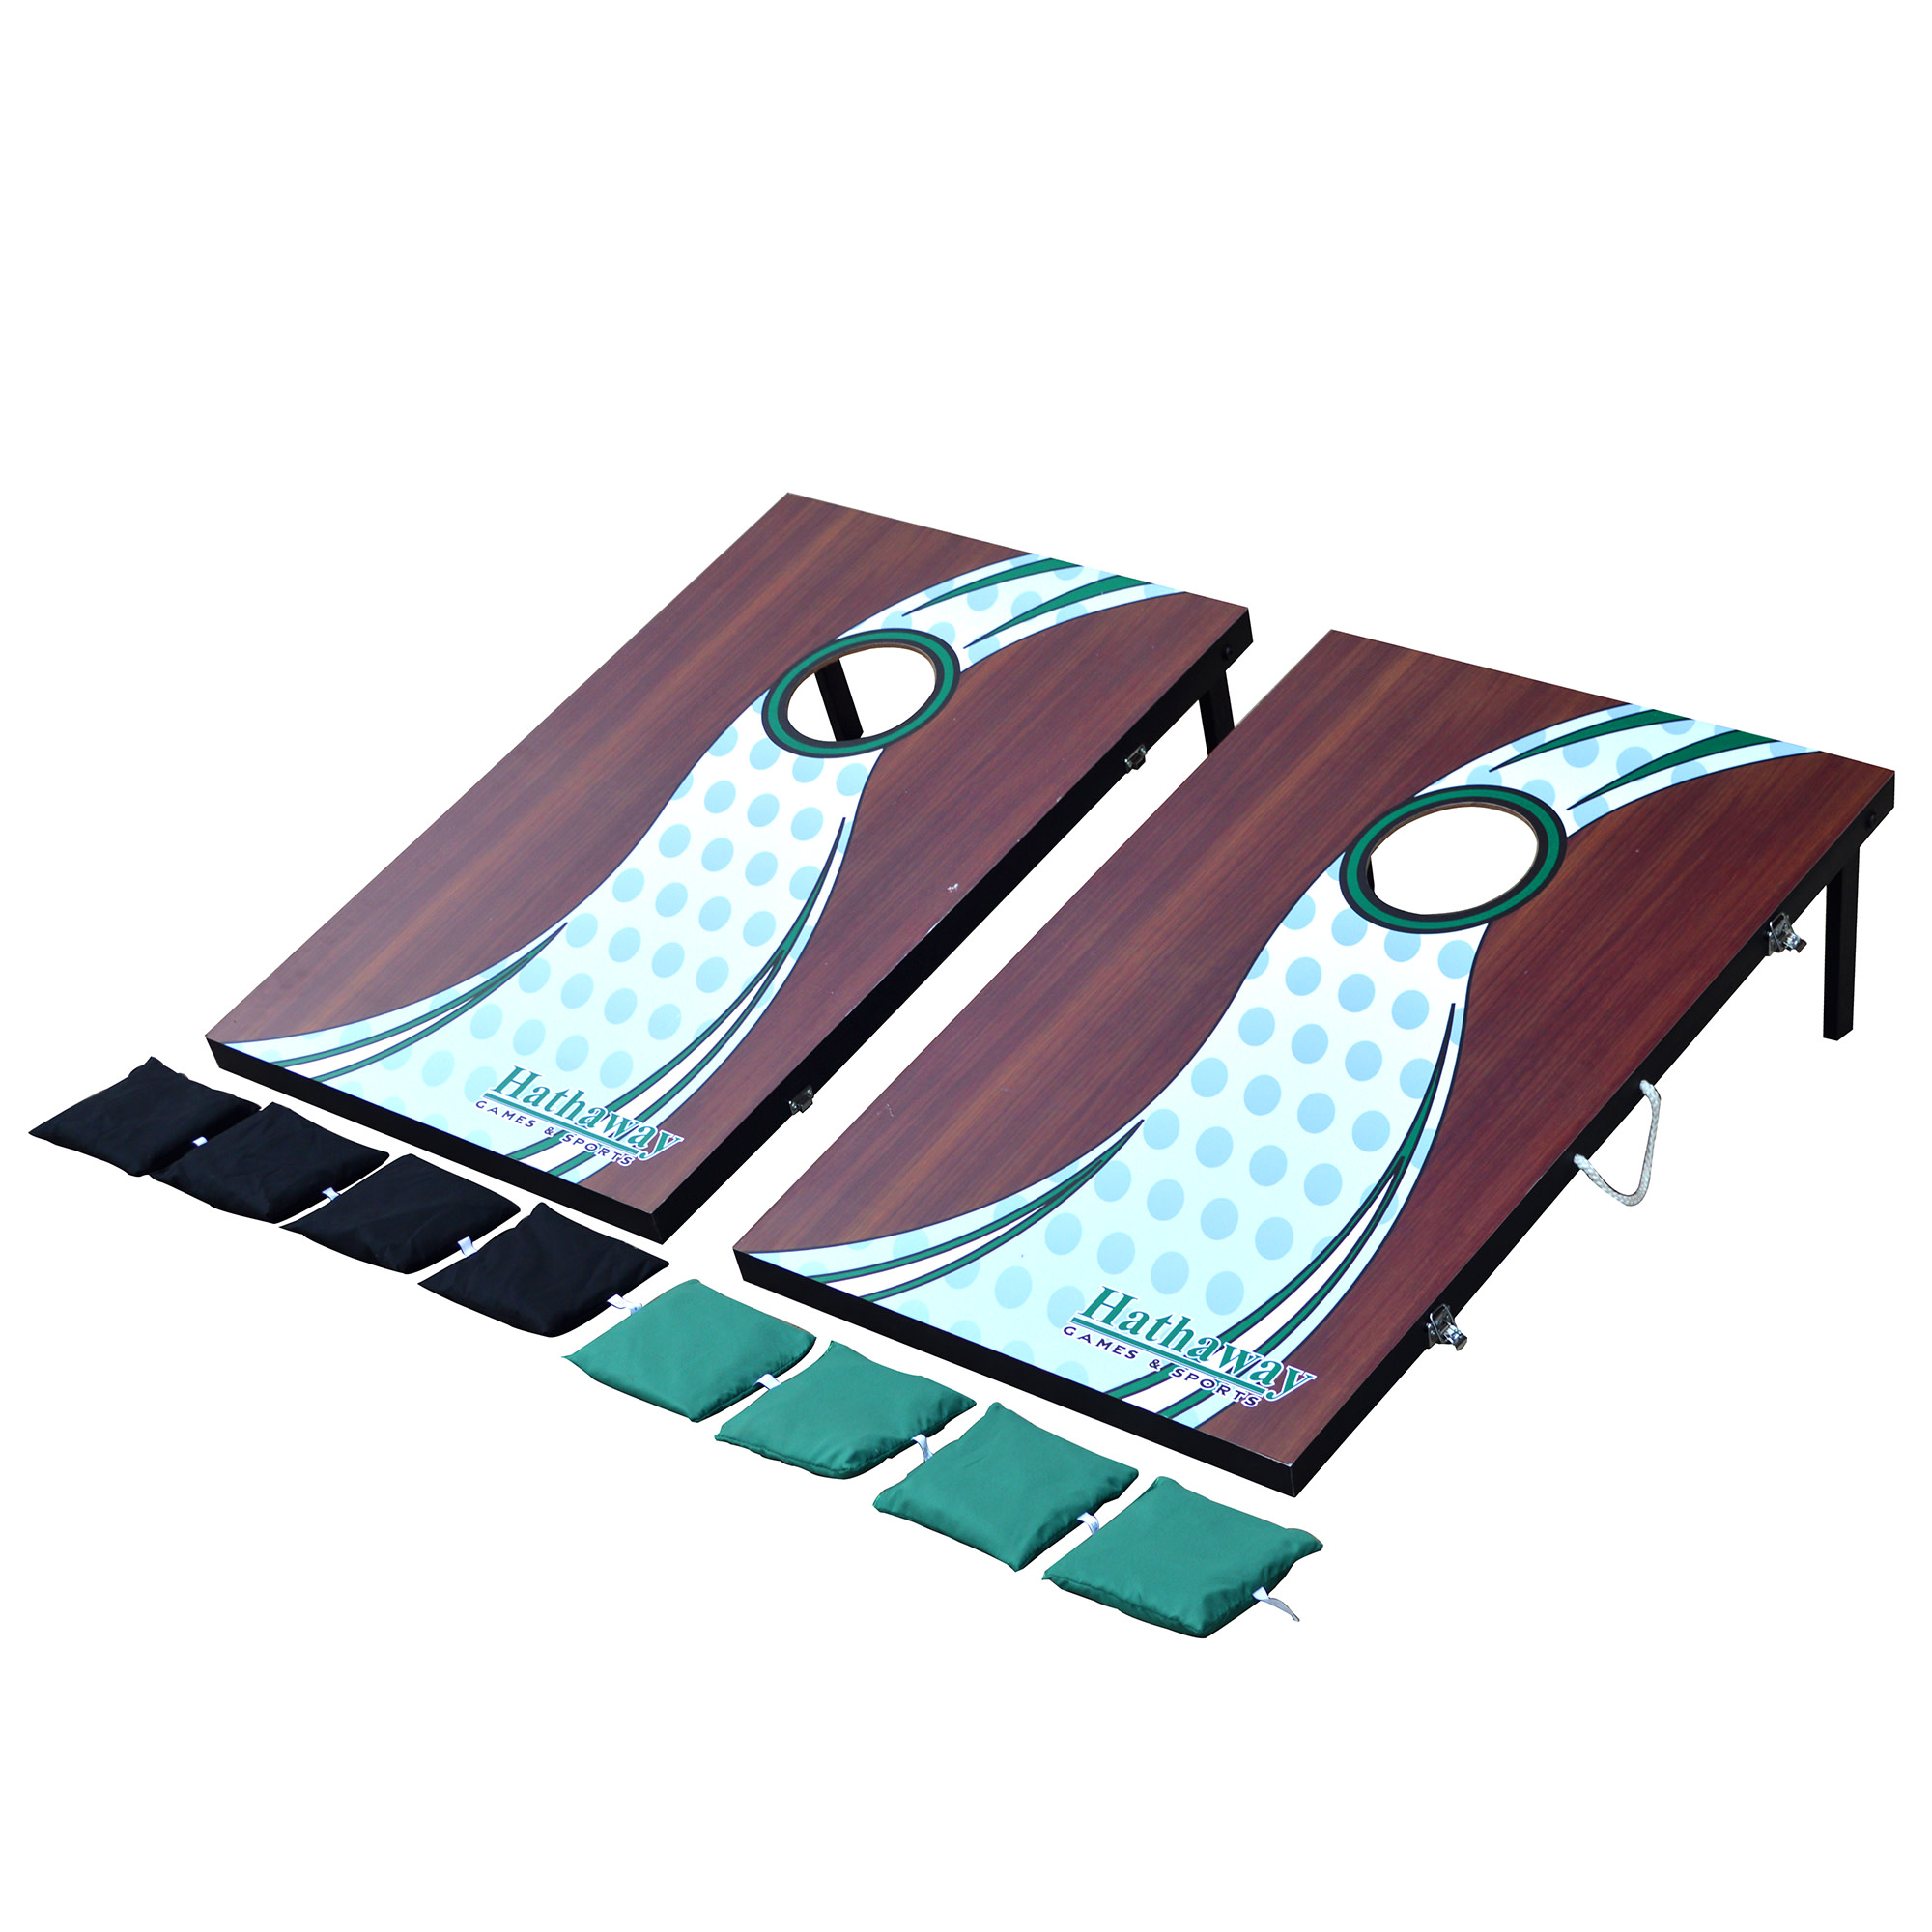 Hathaway Cornhole Beanbag Toss Game Set w 2 Target Boards & 8 Bags Multicolored by Blue Wave Products